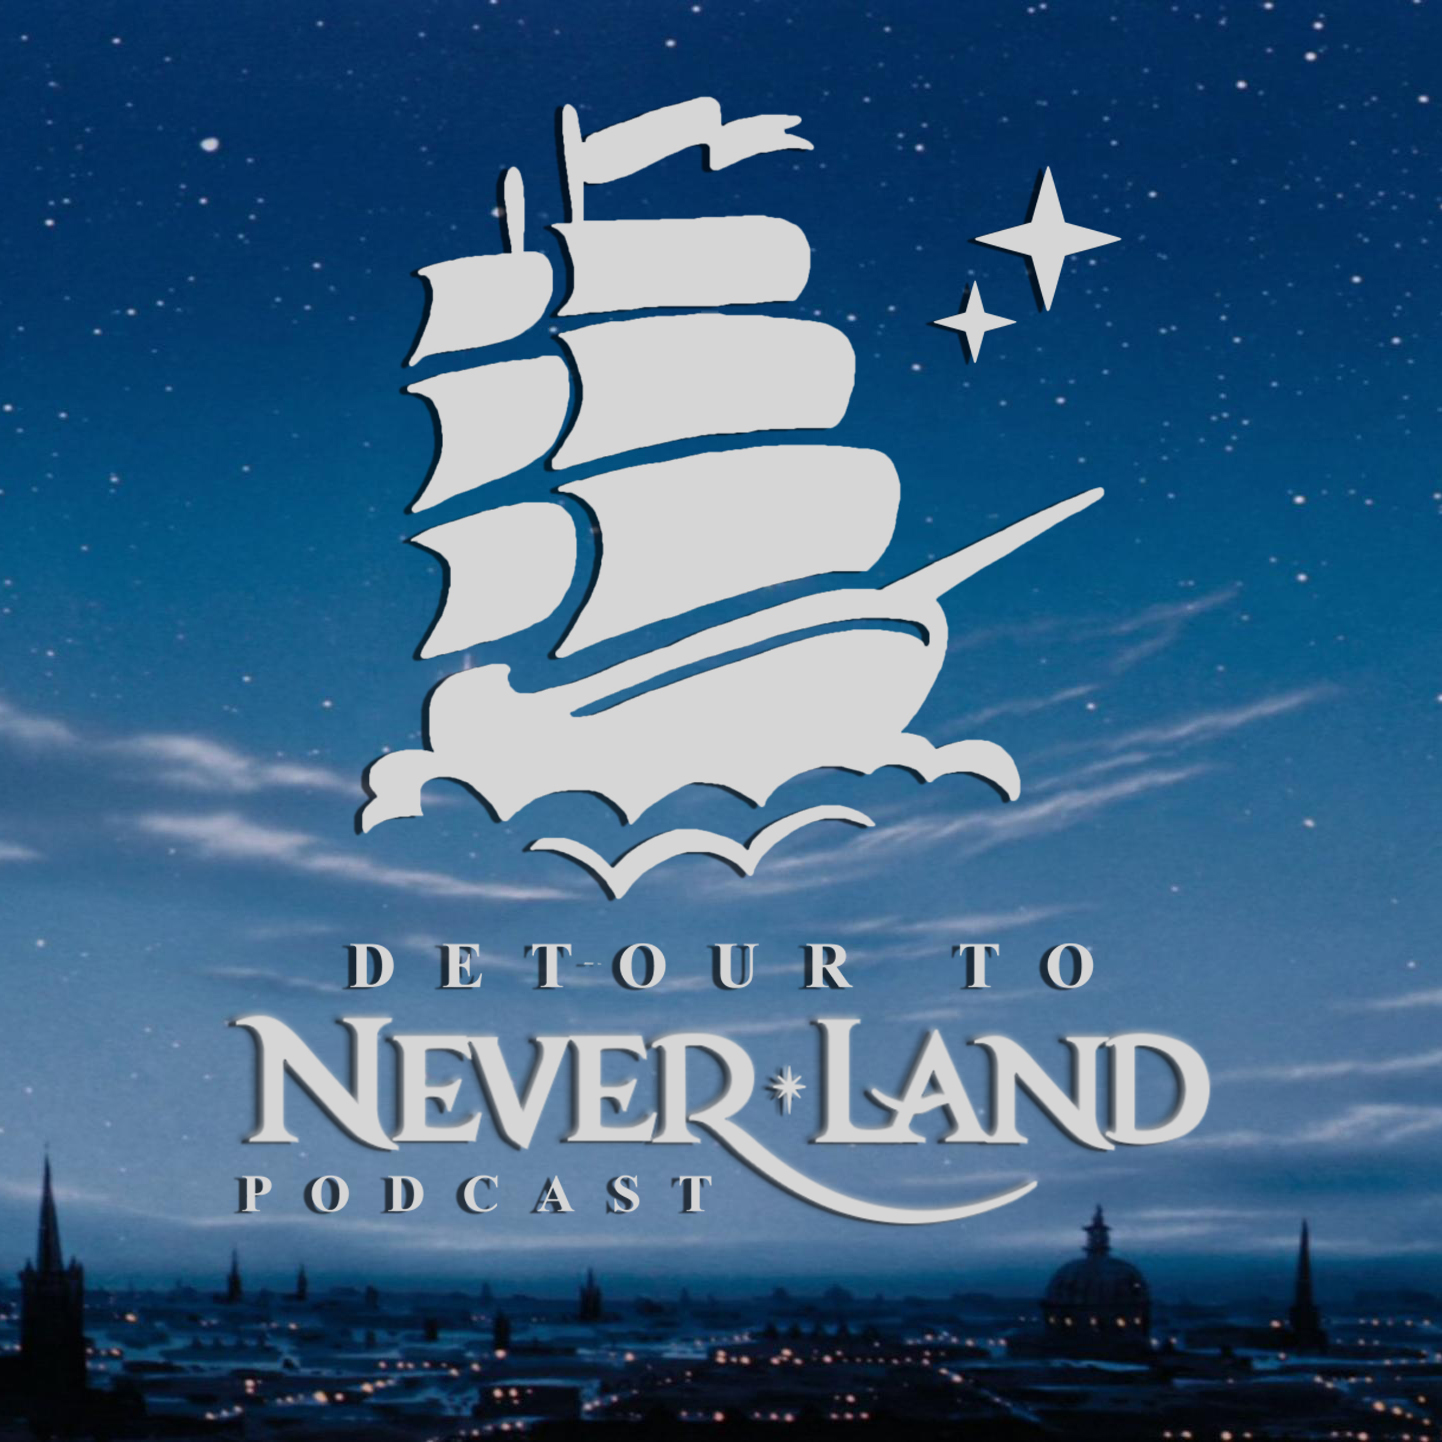 Detour To Neverland - Episode 92 | Hannah Little, Disney Travel Planner on Building a Client Base through Social Media & Local Outreach